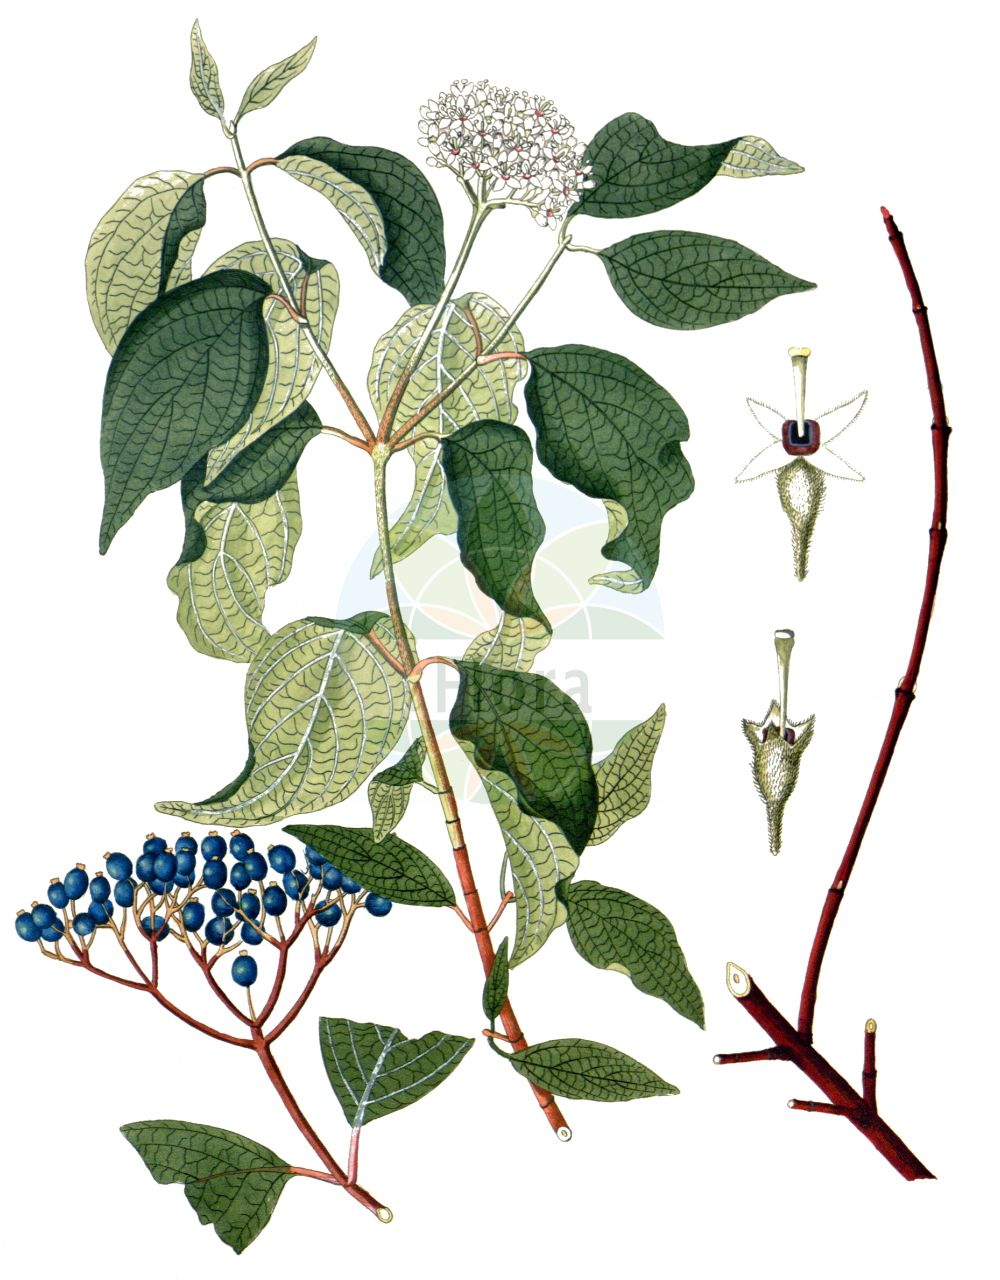 Historische Abbildung von Cornus sericea (Weisser Hartriegel - Red-osier Dogwood). Das Bild zeigt Blatt, Bluete, Frucht und Same. ---- Historical Drawing of Cornus sericea (Weisser Hartriegel - Red-osier Dogwood).The image is showing leaf, flower, fruit and seed.(Cornus sericea,Weisser Hartriegel,Red-osier Dogwood,Cornus sericea,Swida sericea,Thelycrania sericea,Weisser Hartriegel,Red-osier Dogwood,Cornus,Hartriegel,Cornel,Cornaceae,Hartriegelgewaechse,Dogwood family,Blatt,Bluete,Frucht,Same,leaf,flower,fruit,seed,Krauss (1802f))